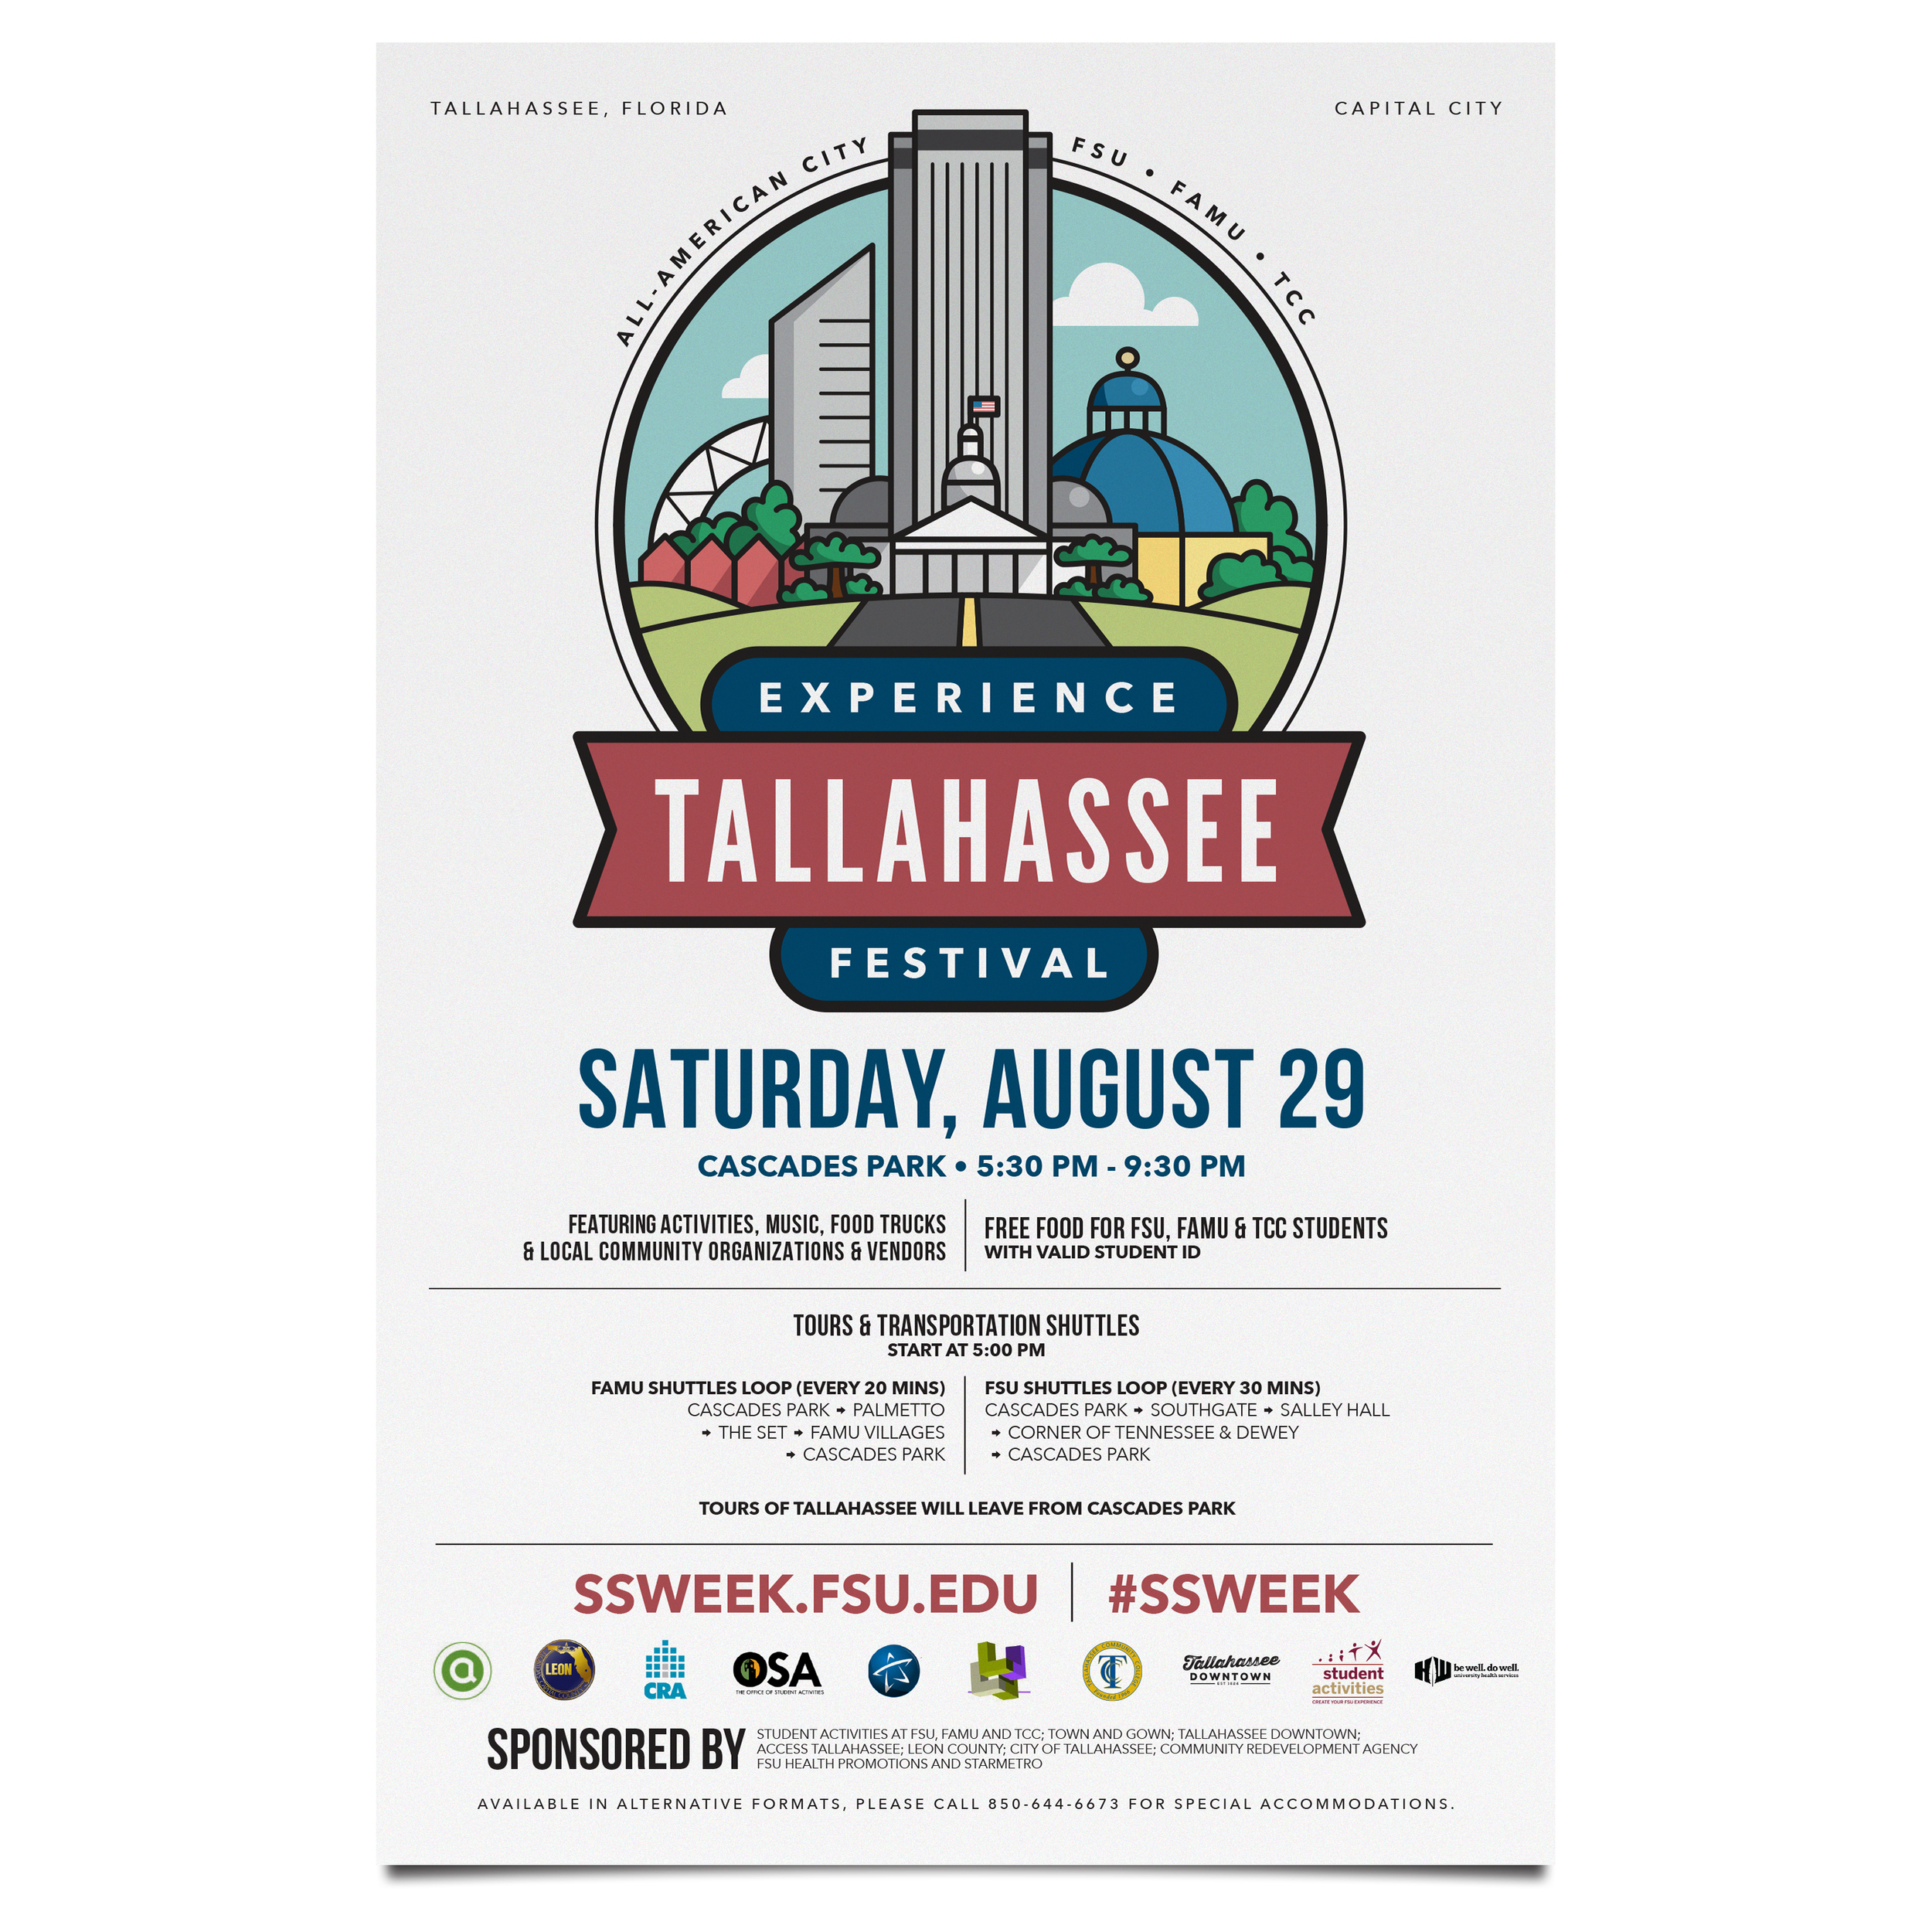 Experience Tallahassee Festival - Poster